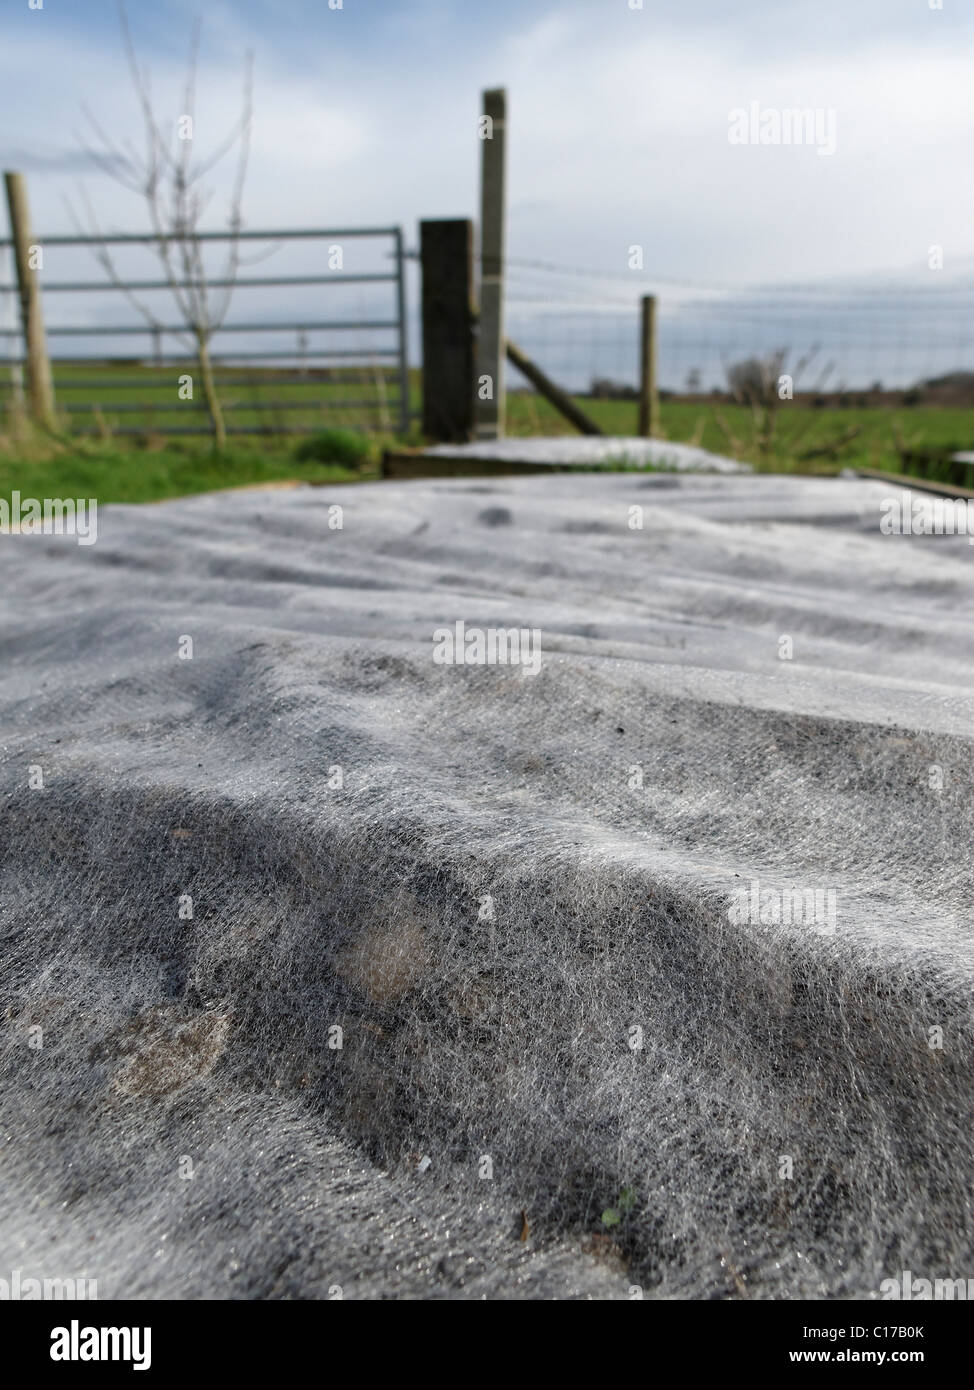 Horticultural fleece covering a raised vegetable bed. Lincolnshire, England. - Stock Image